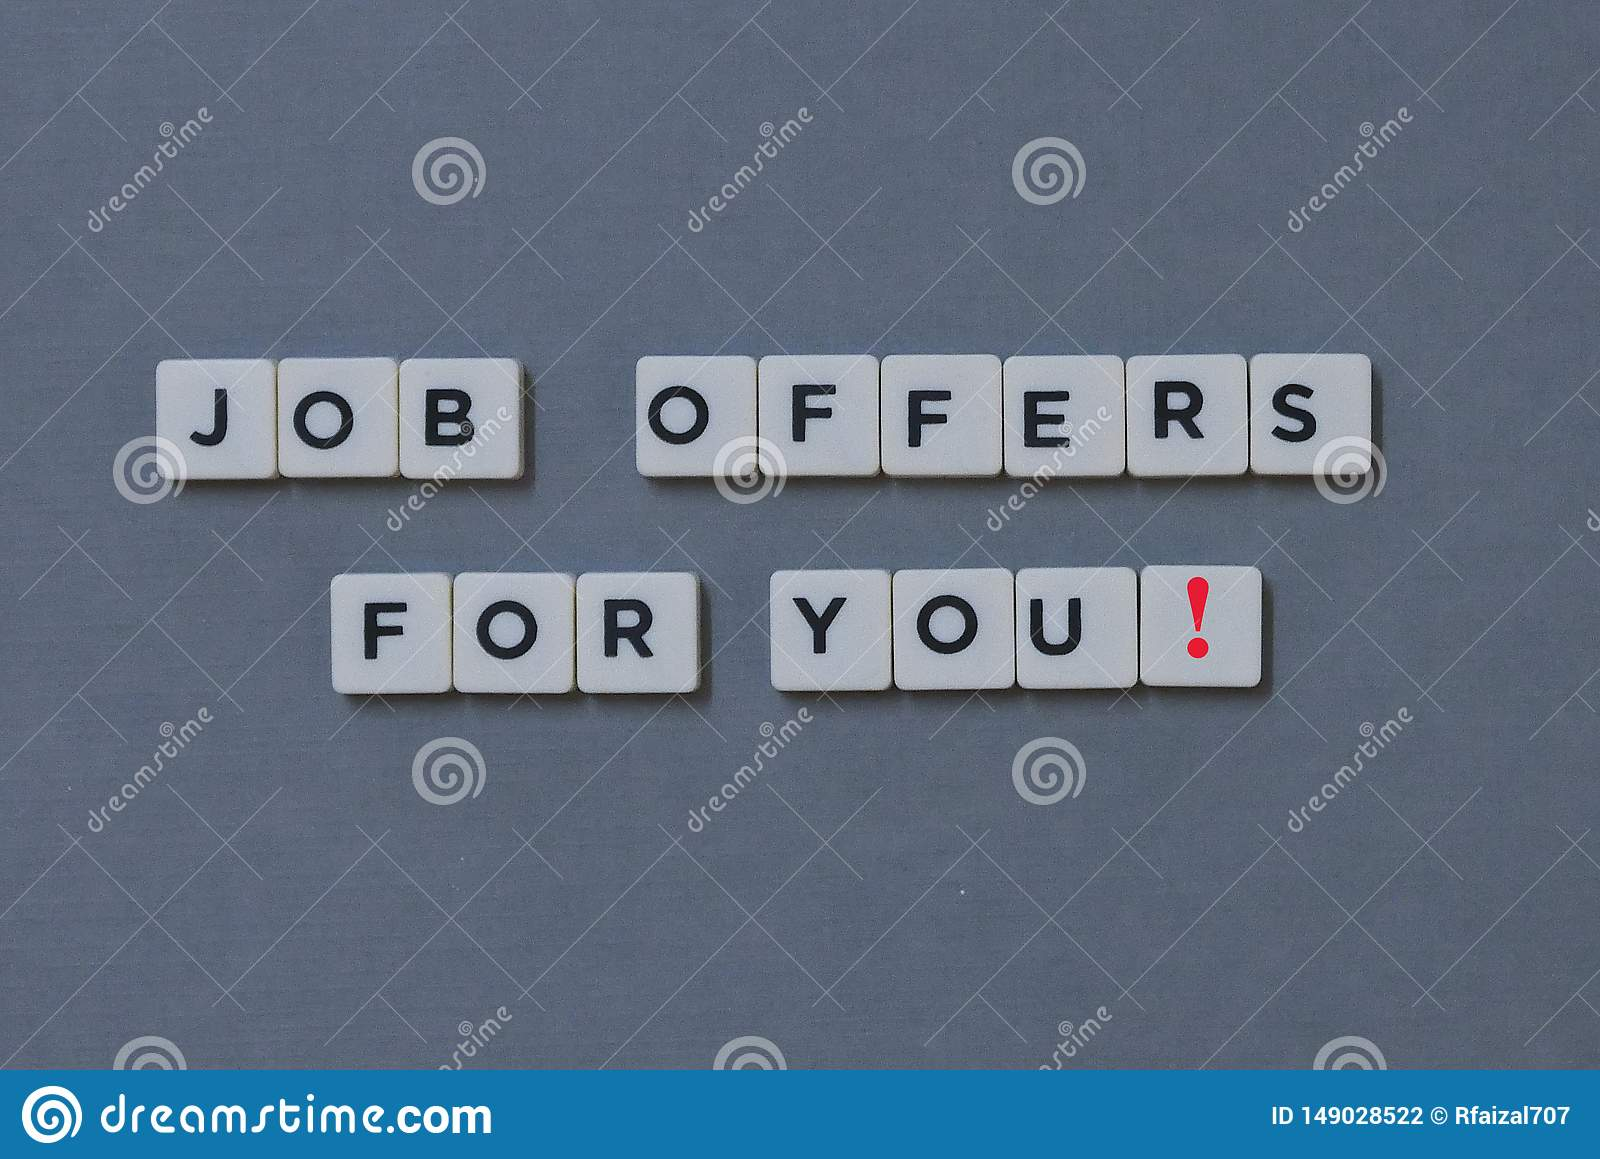 ' Job Offers For You! ' word made of square letter word on grey background